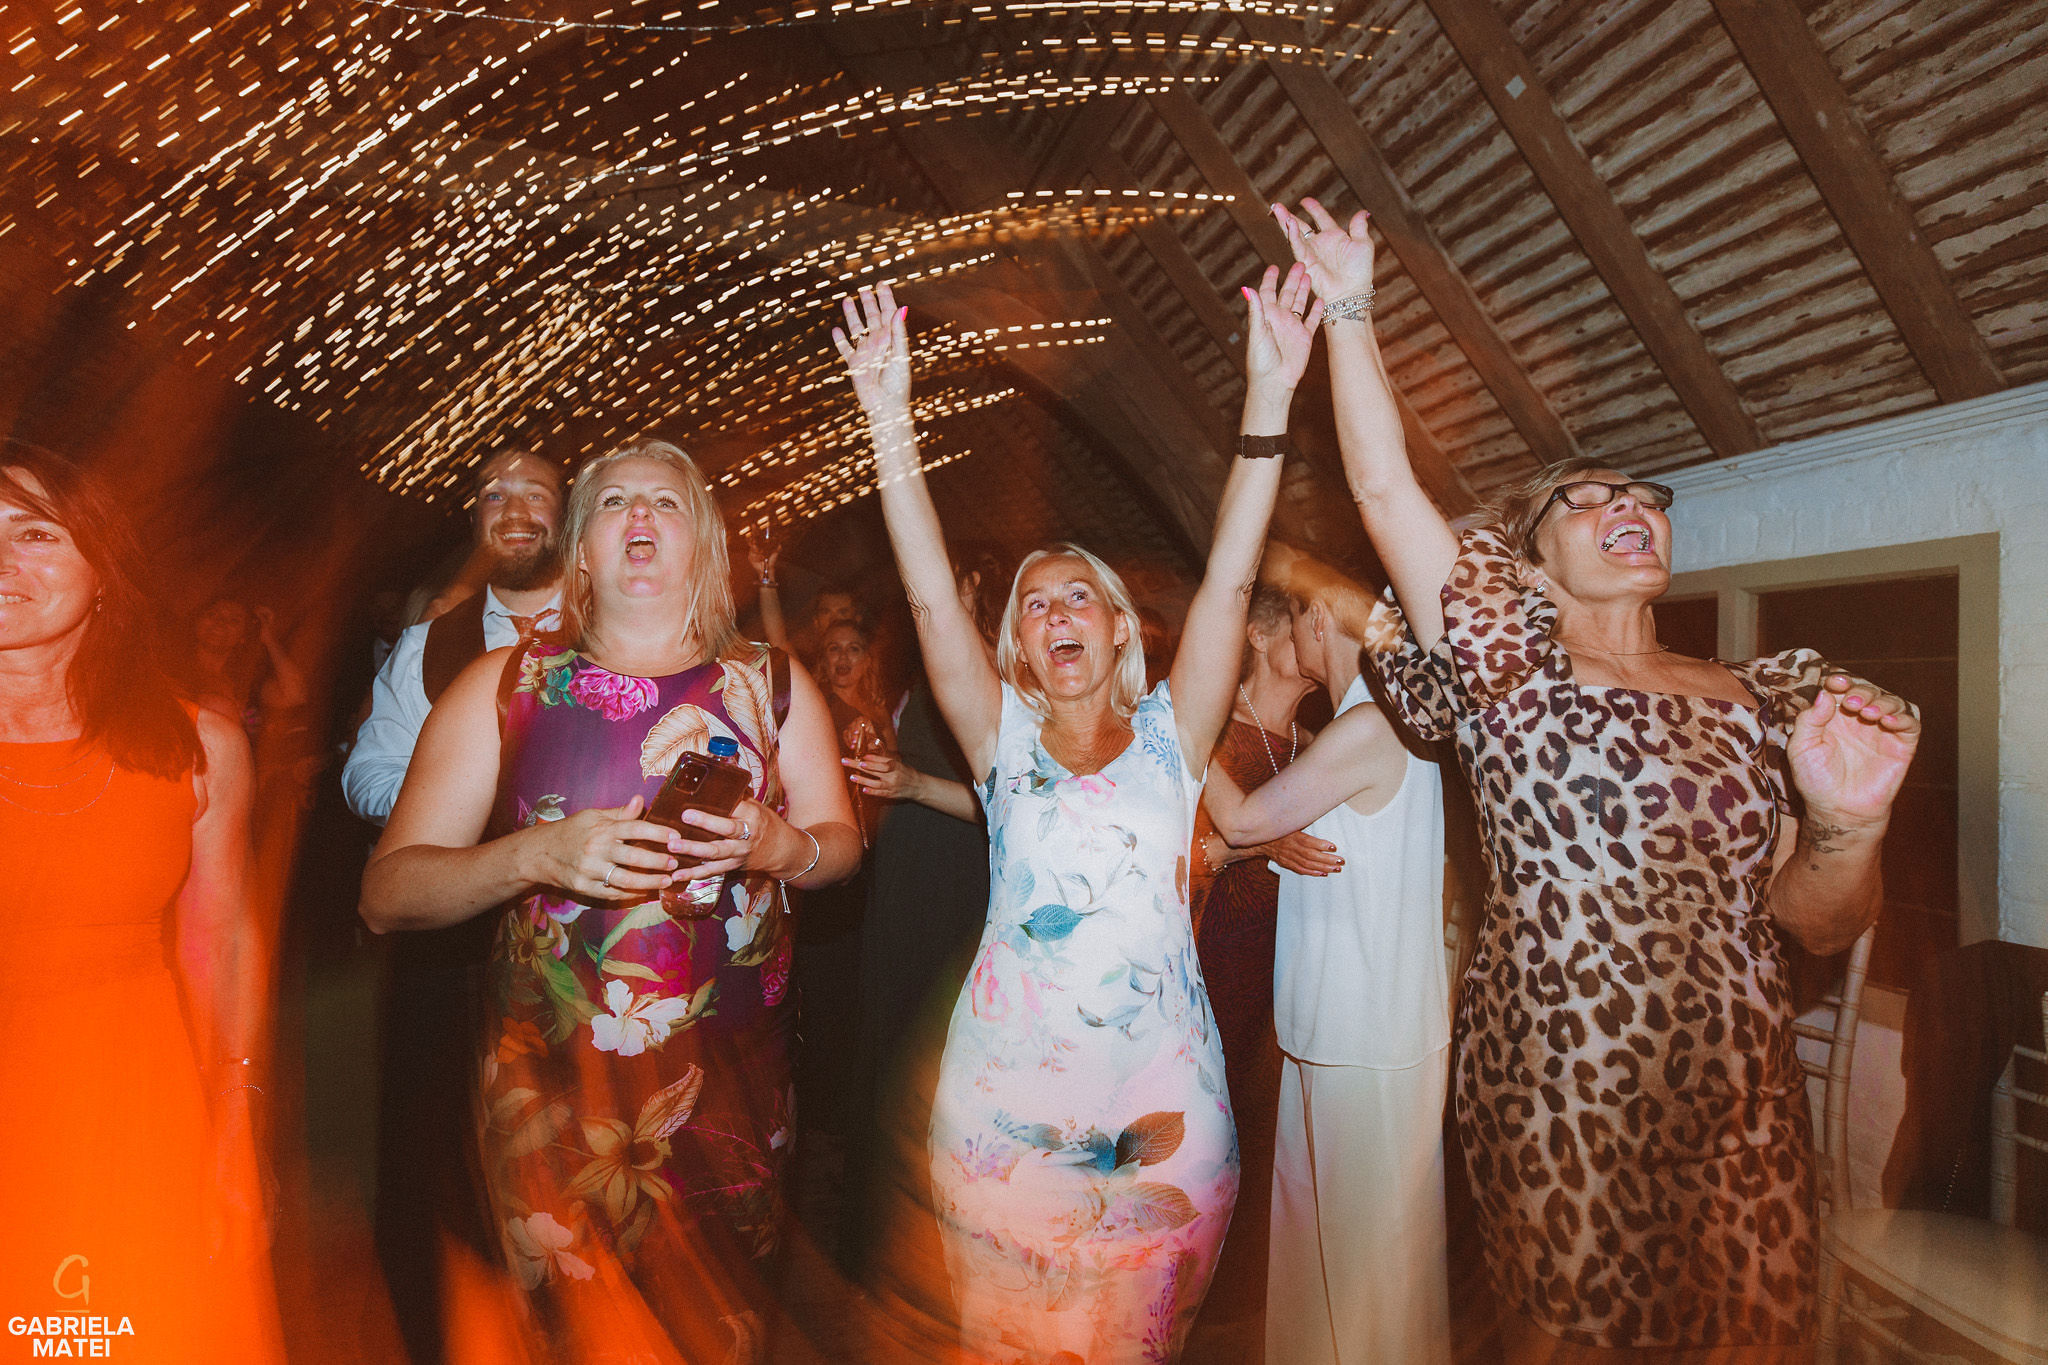 wedding guests dancing at at South Stoke Barn wedding venue in Arundel by gabriela matei sussex photographer